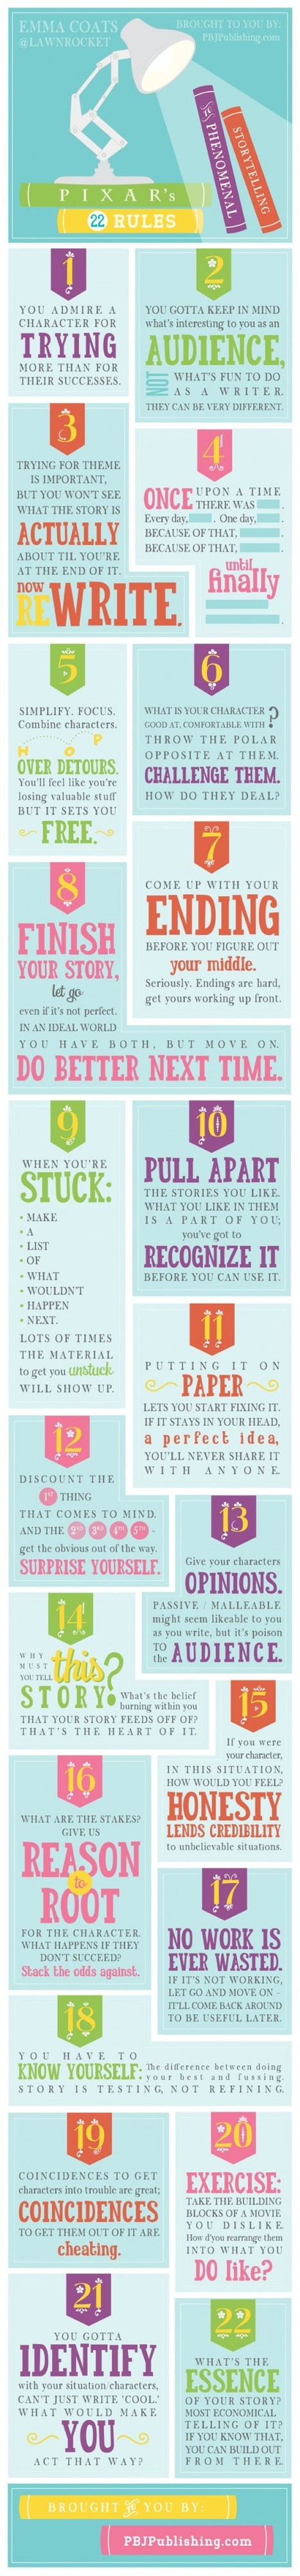 Pixar's 22 Rules to Phenomenal Storytelling [INFOGRAPHIC] | Google NonProfit Grants Help | Scoop.it